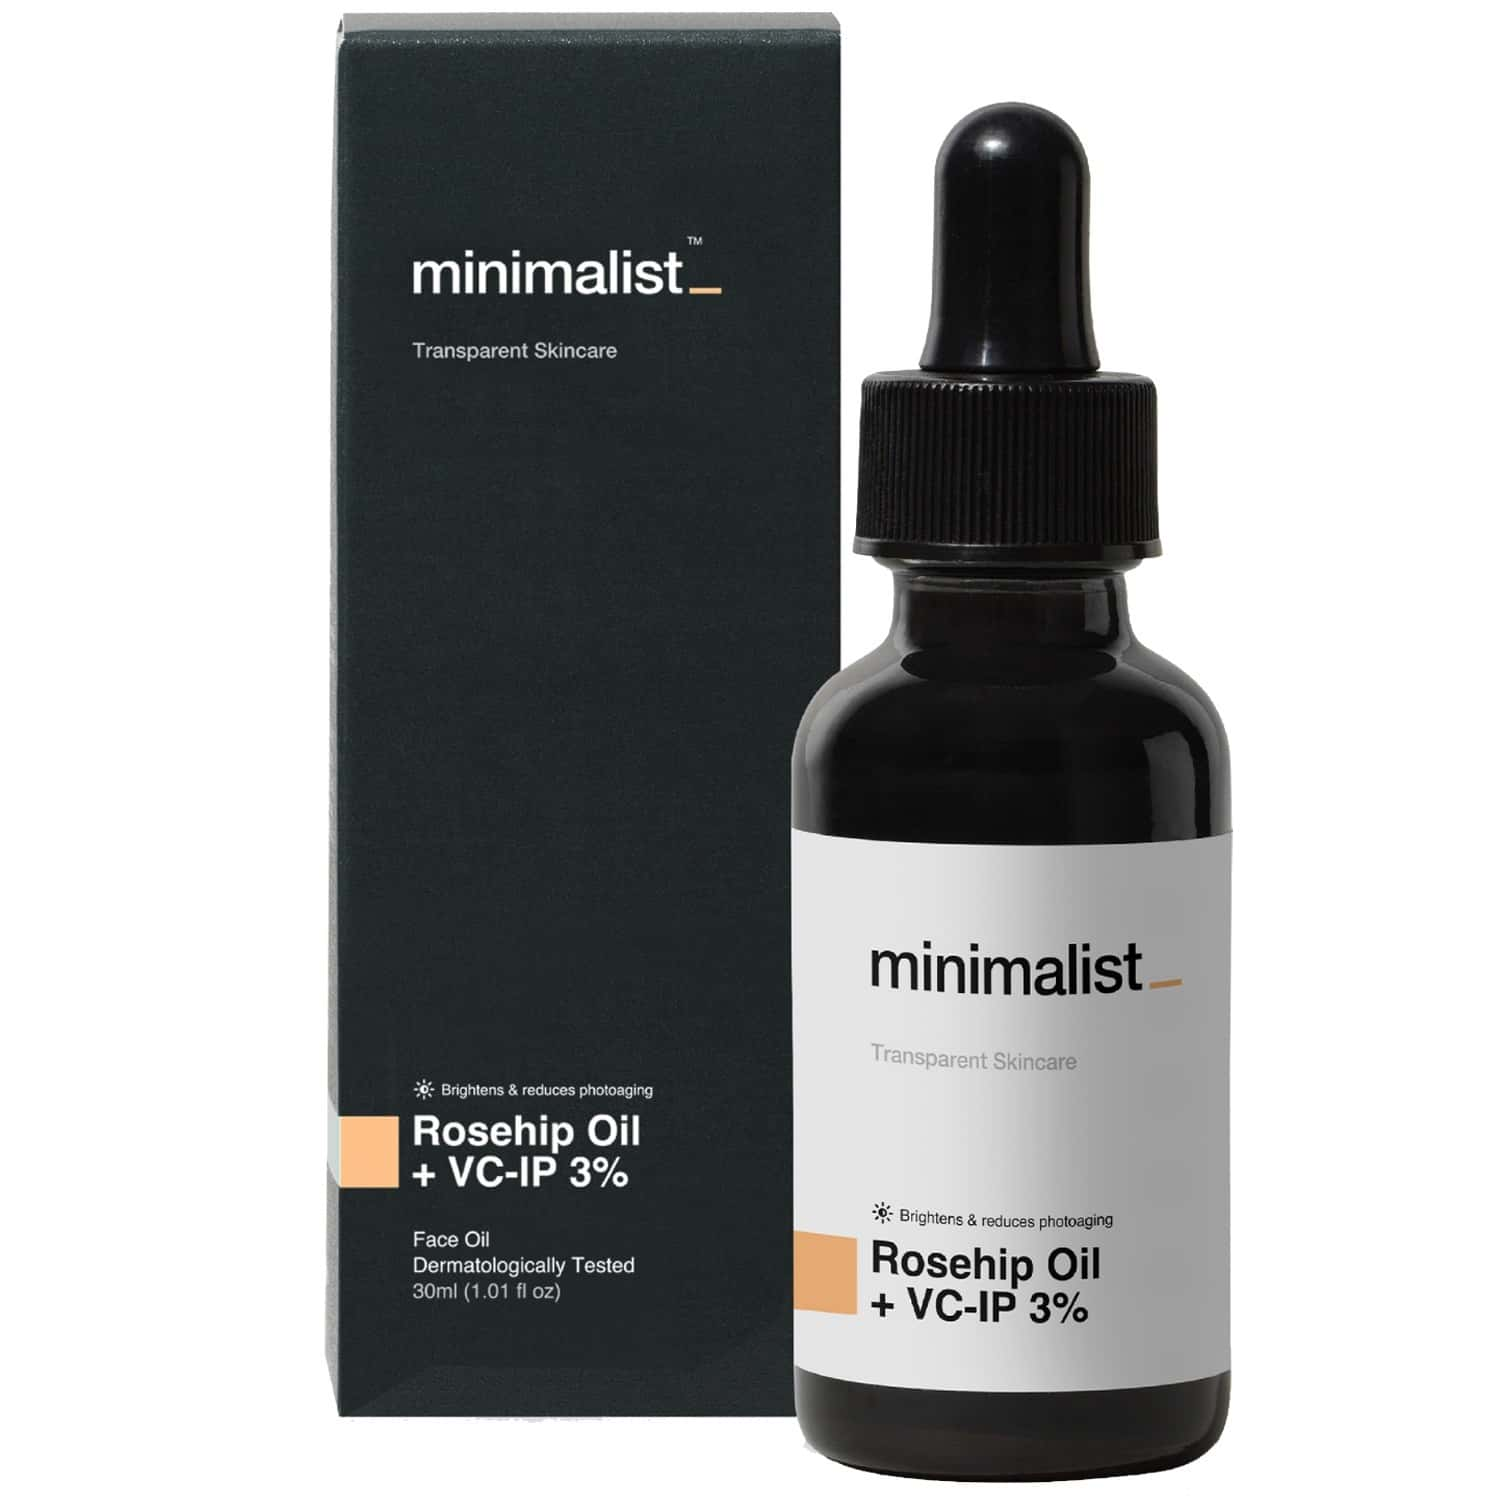 Minimalist Rosehip Face Oil With Vitamin C For Glowing Skin, Reduced Sun Damage & Skin Brightening(30ml)